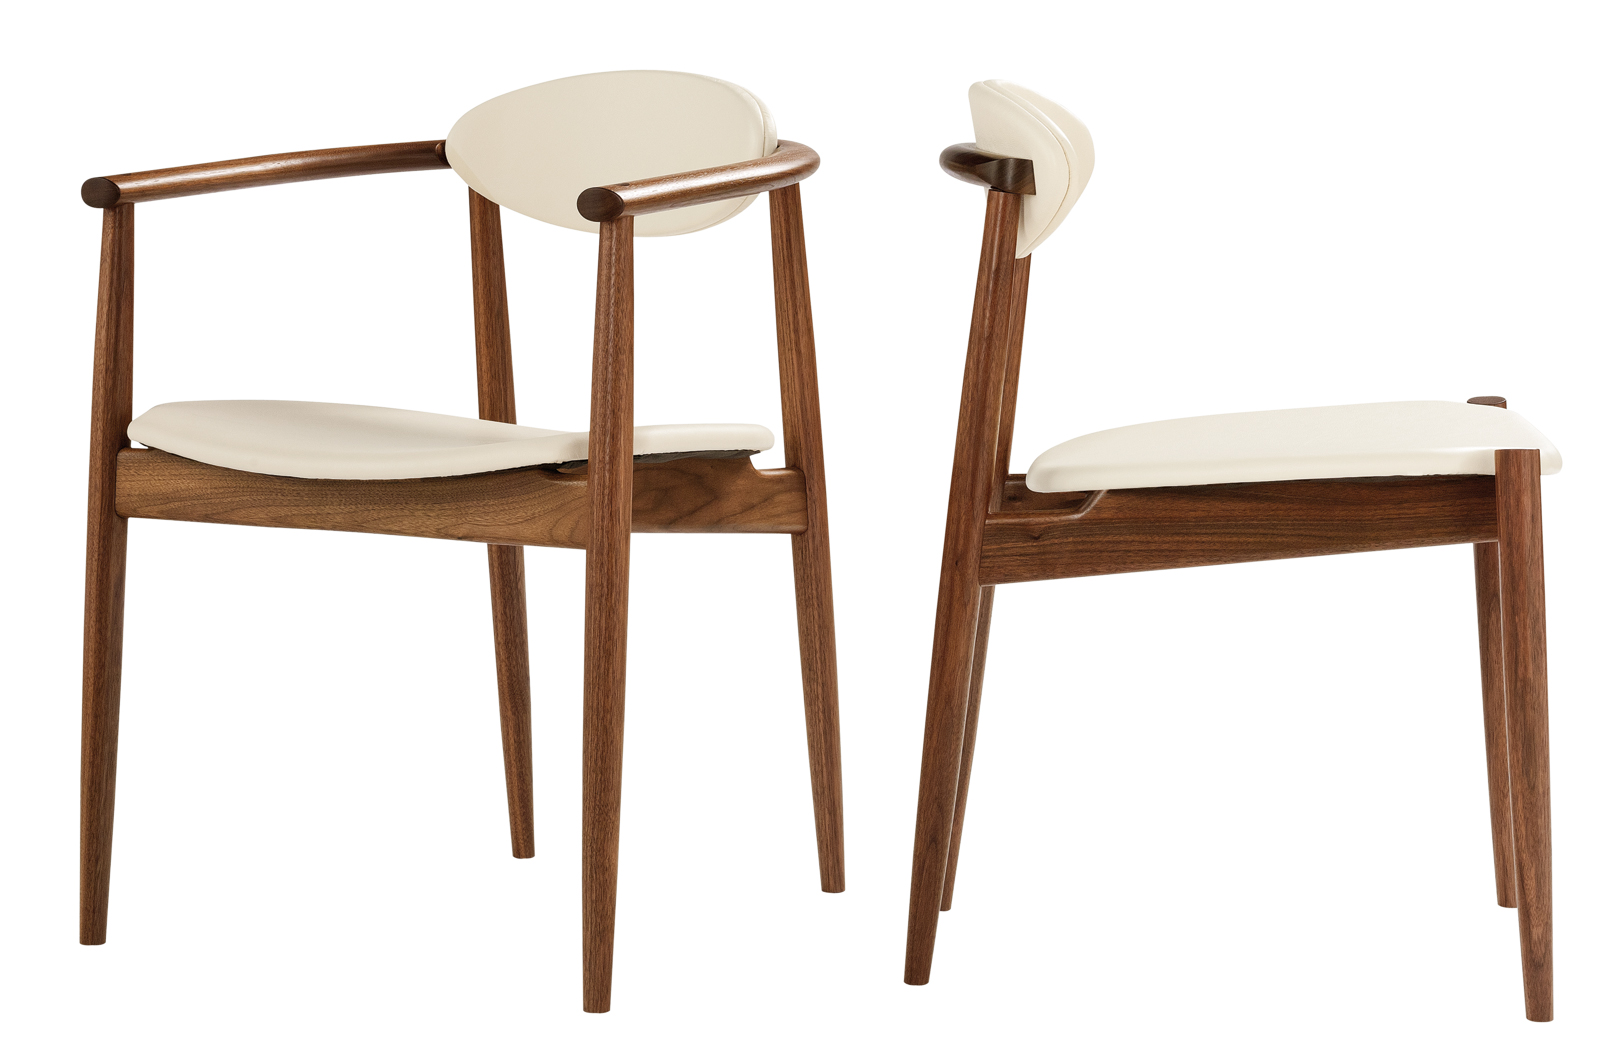 Ellipse Dining Chairs by Thomas Moser